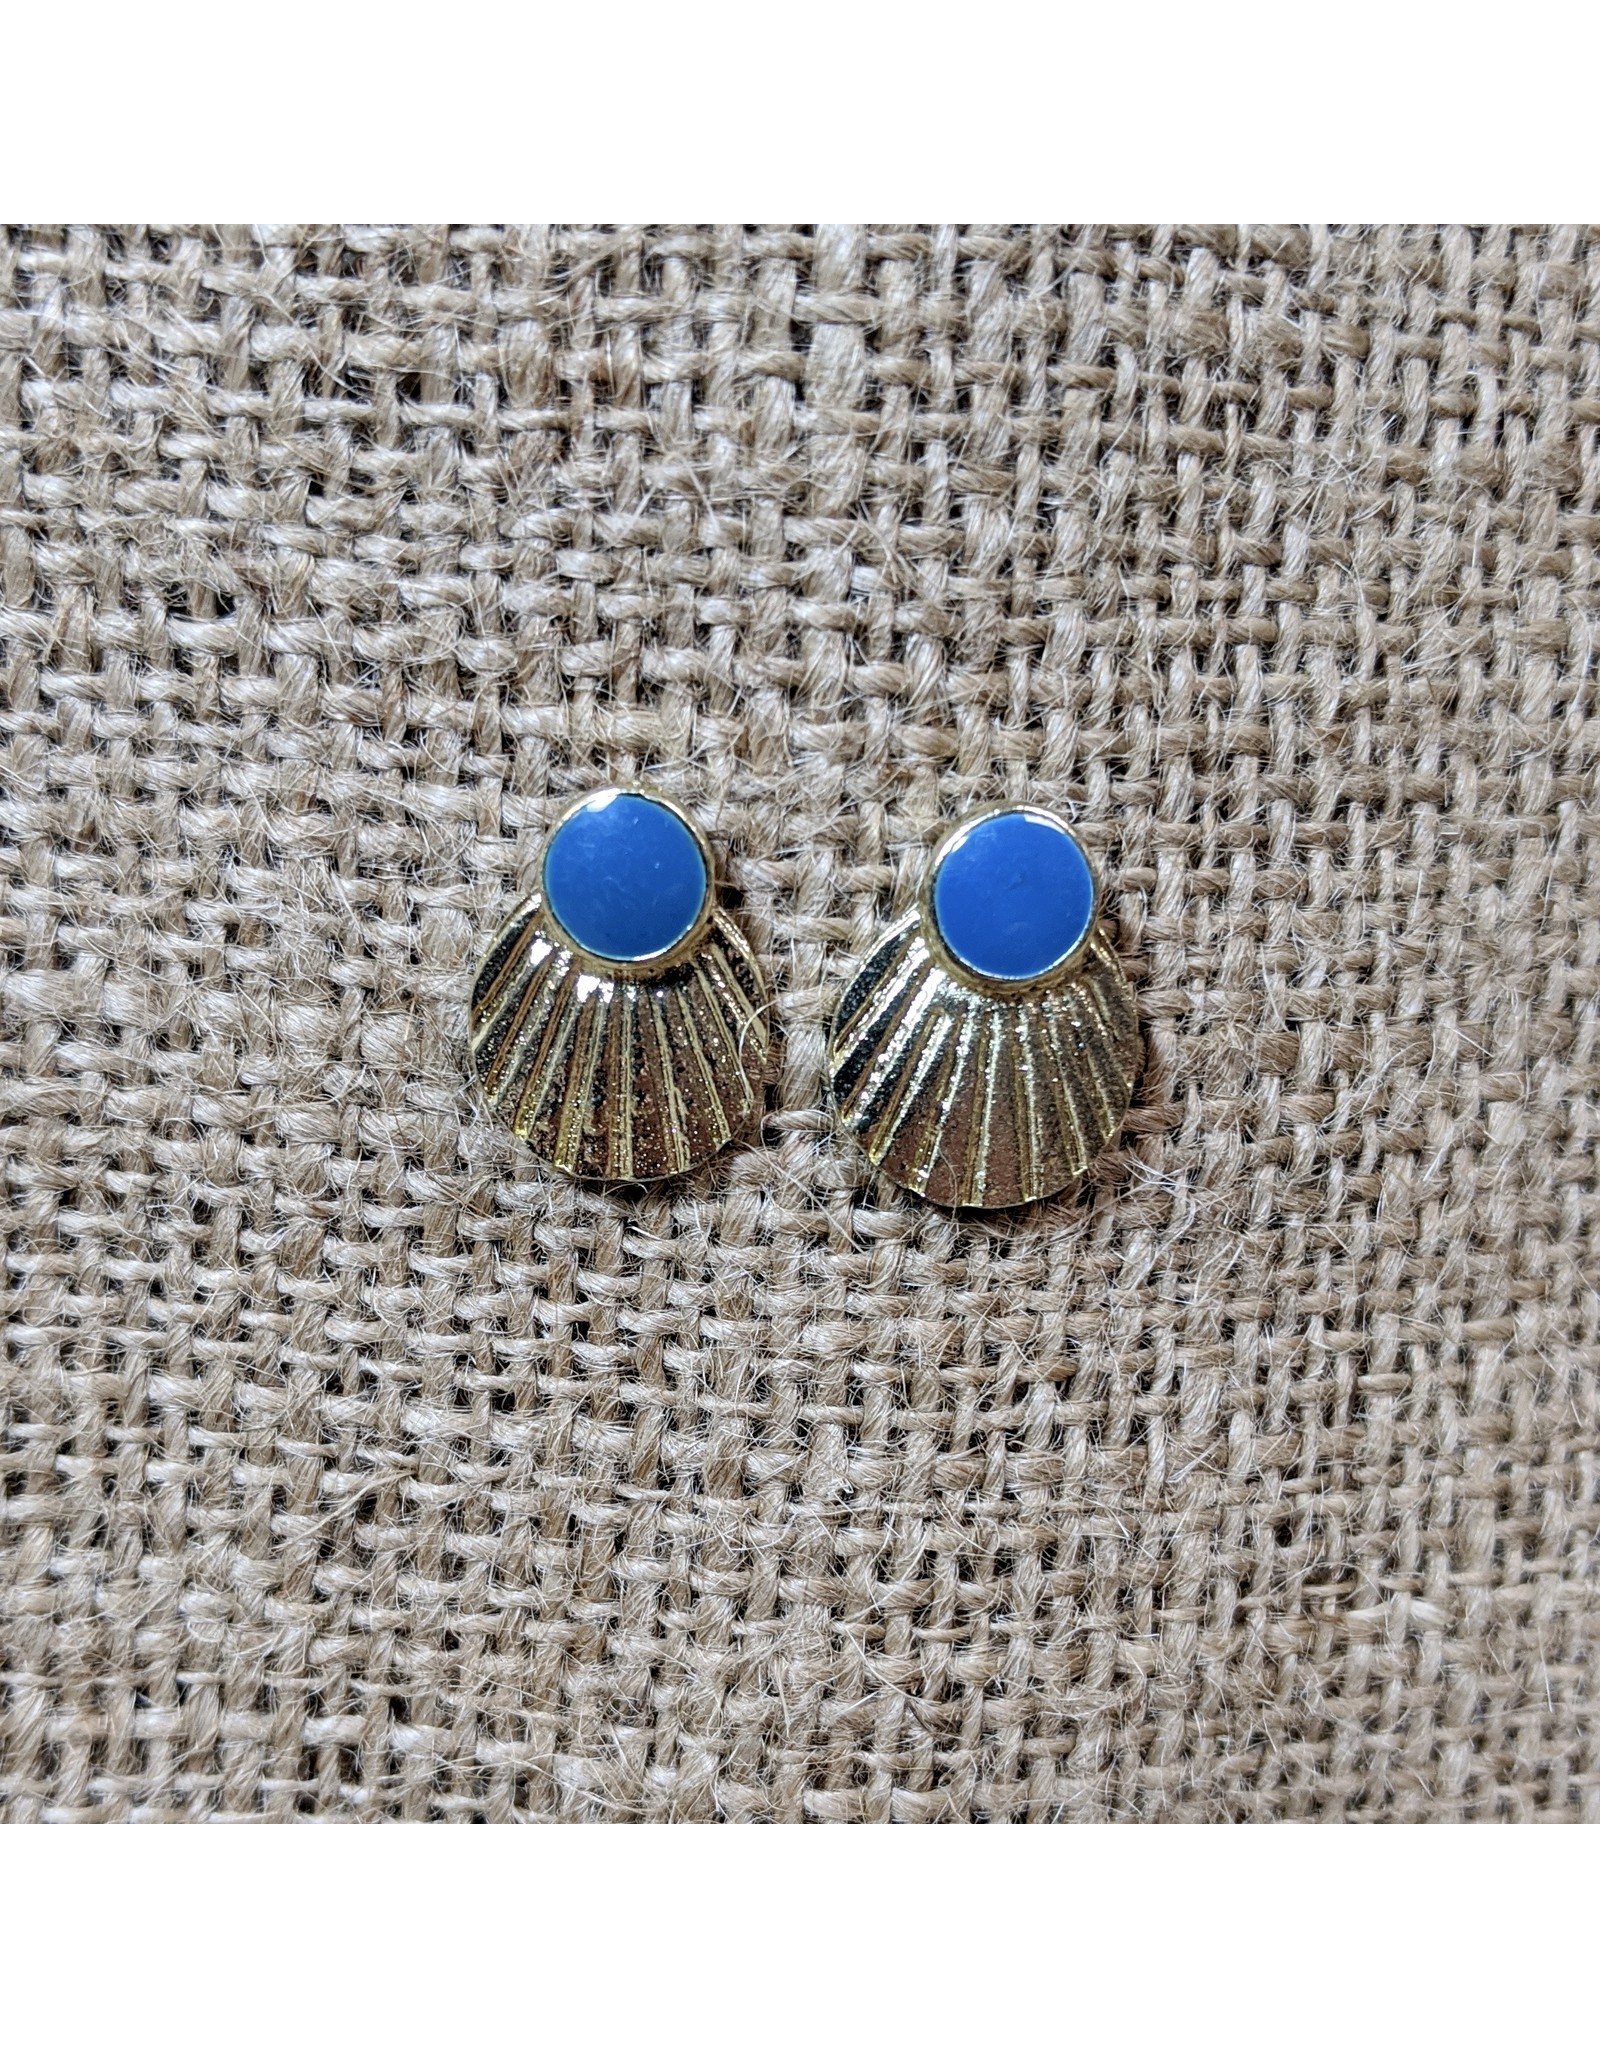 Earrings Scallop studs, India